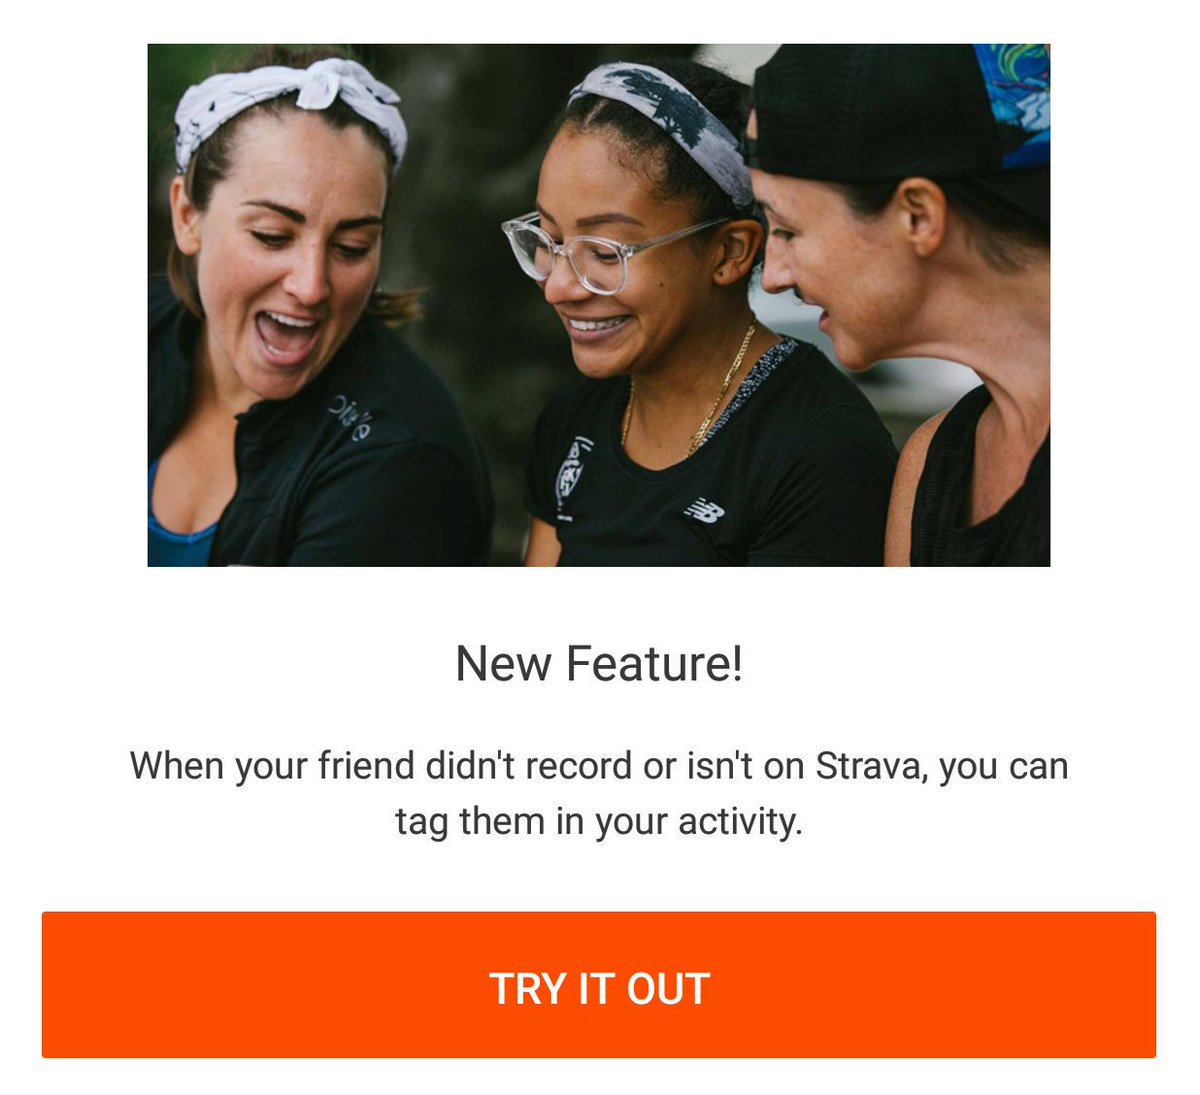 test Twitter Media - Hey @Strava, if my friend didn't record, it might be because they didn't want to. It's not for me to put someone at an activity they chose not to record. Will you please reconsider how this feature is implemented? cc: @consentsoftware https://t.co/CJZM9VIhLr